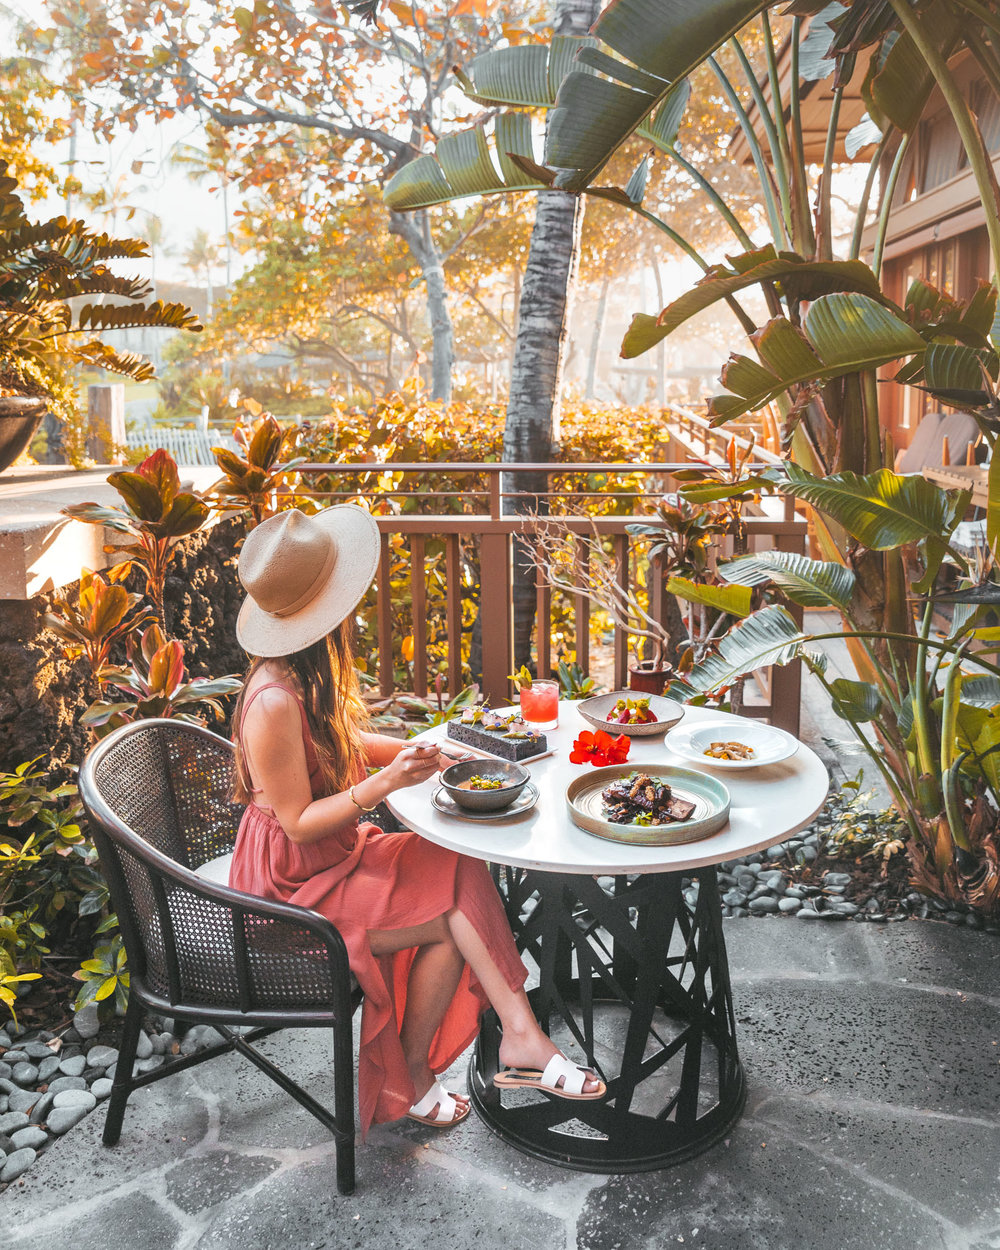 Golden hour dinner at Ulu // A Luxury Stay on the Big Island: Four Seasons Resort Hualalai // #readysetjetset #hawaii #bigisland #luxuryhotels #beachresorts #usa #travel